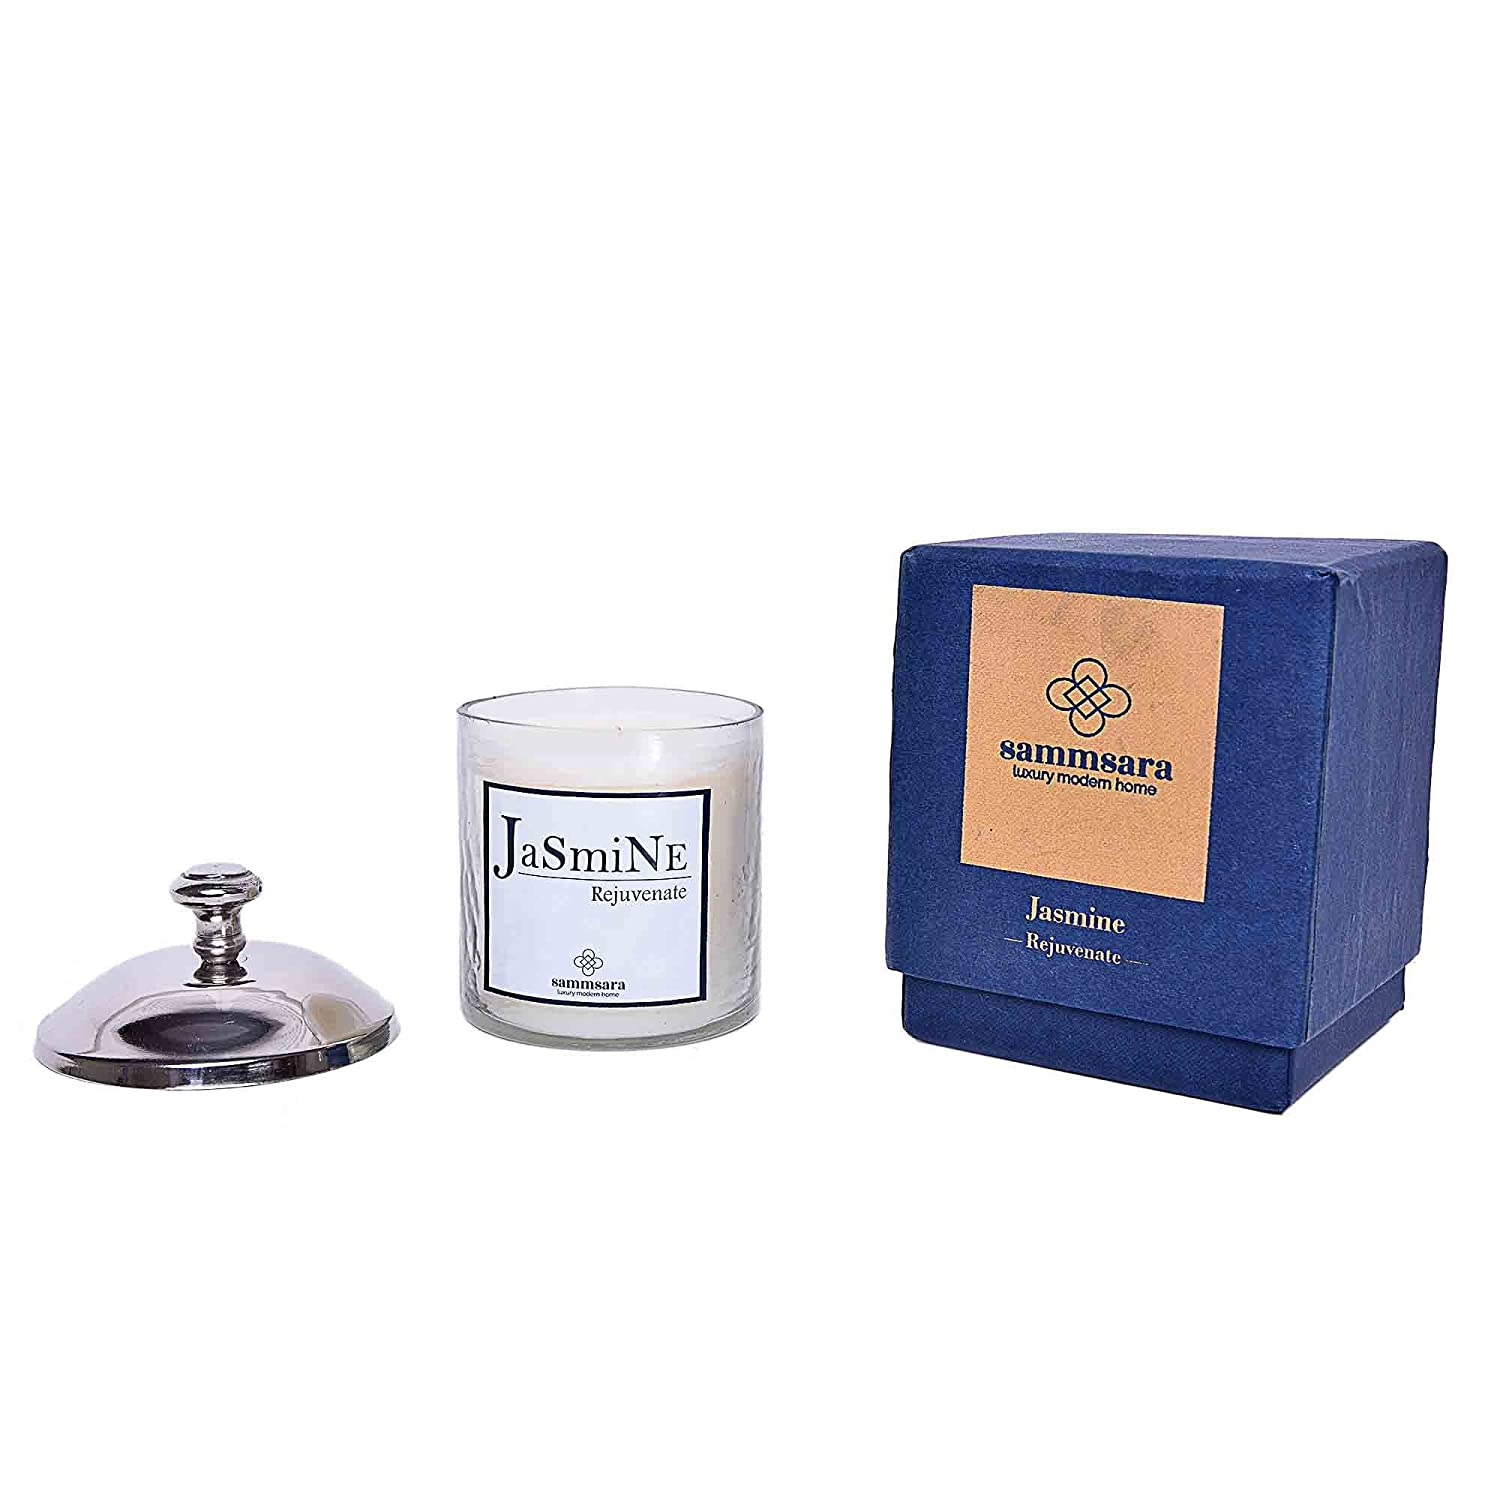 Scented Candles Aromatherapy All Natural Wax Strong Fragrance of Jasmine with Glass Gift Boxed covered with Aluminium Cap by SAMMSARA. 3.50' x 3.50' x 5' burn time of 16 hours(once lighted)